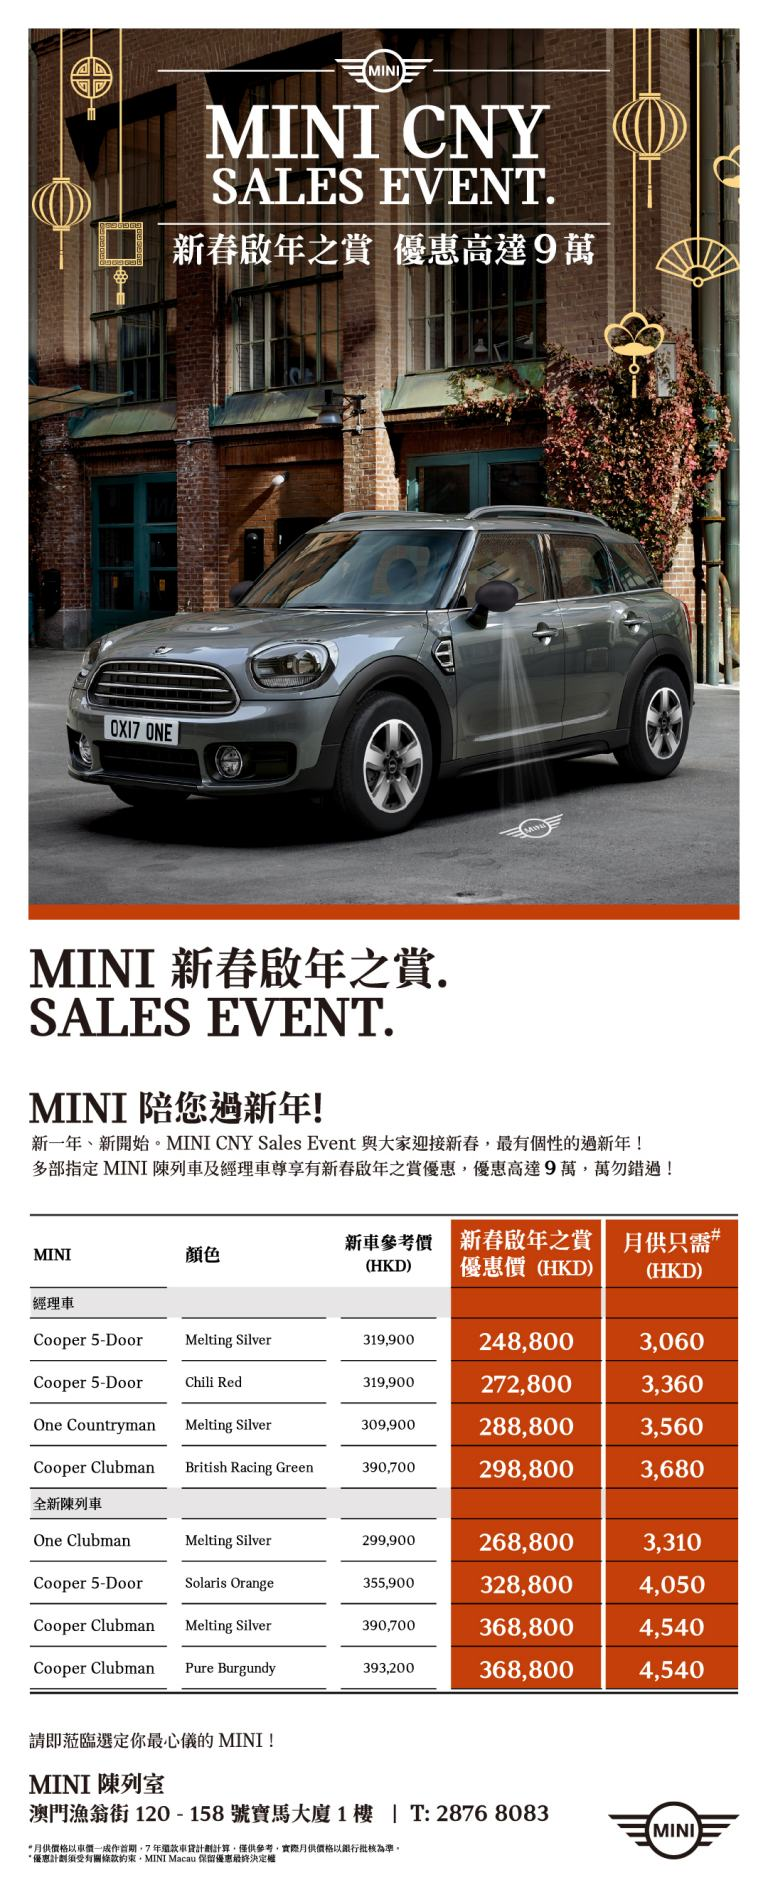 An image of MINI CNY SALES EVENT.